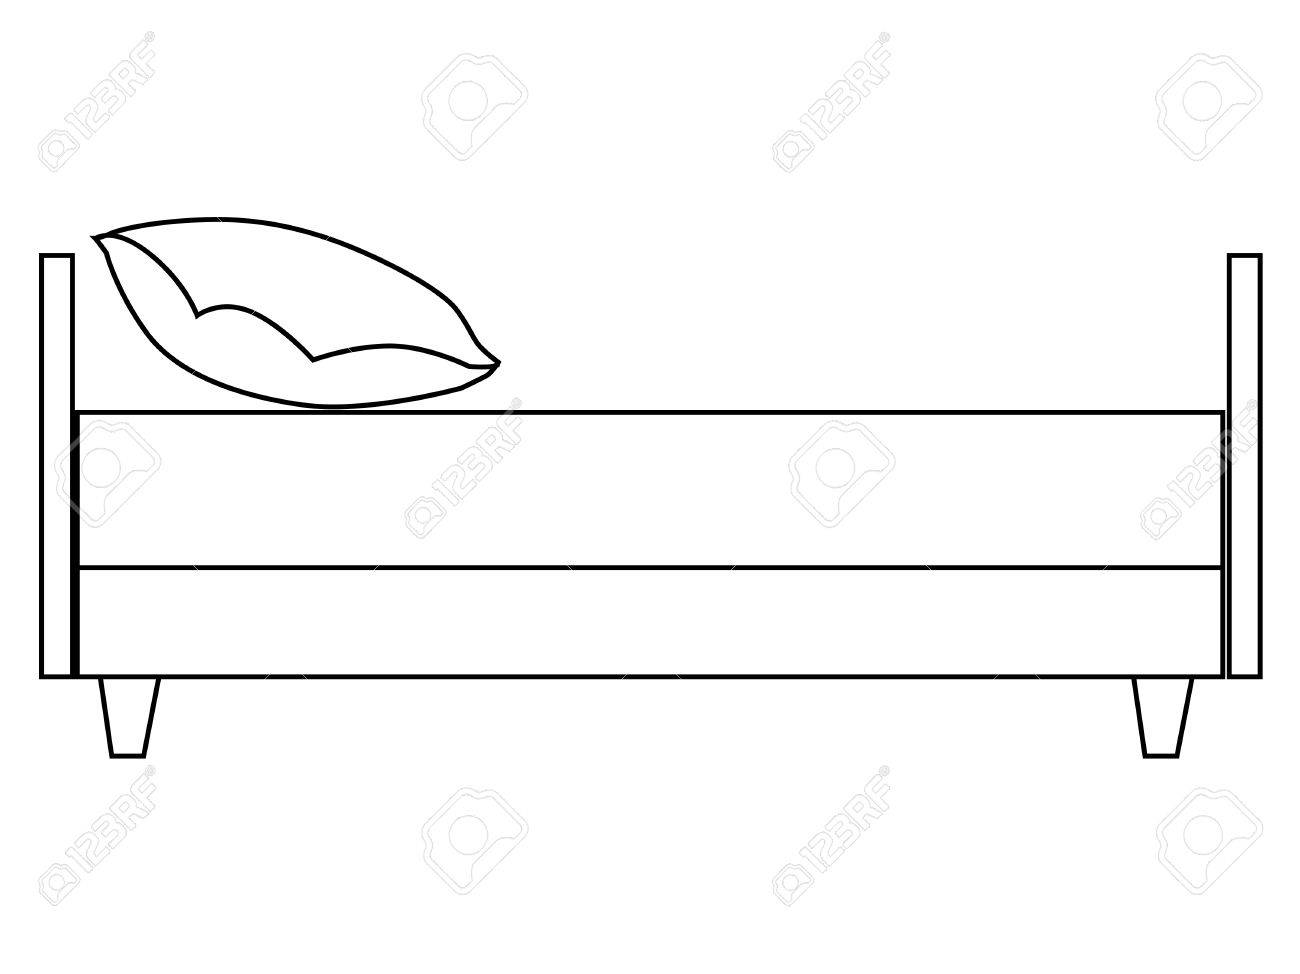 outline illustration of bed side view royalty free cliparts rh 123rf com Sofa Side View Chevy Silverado Side View